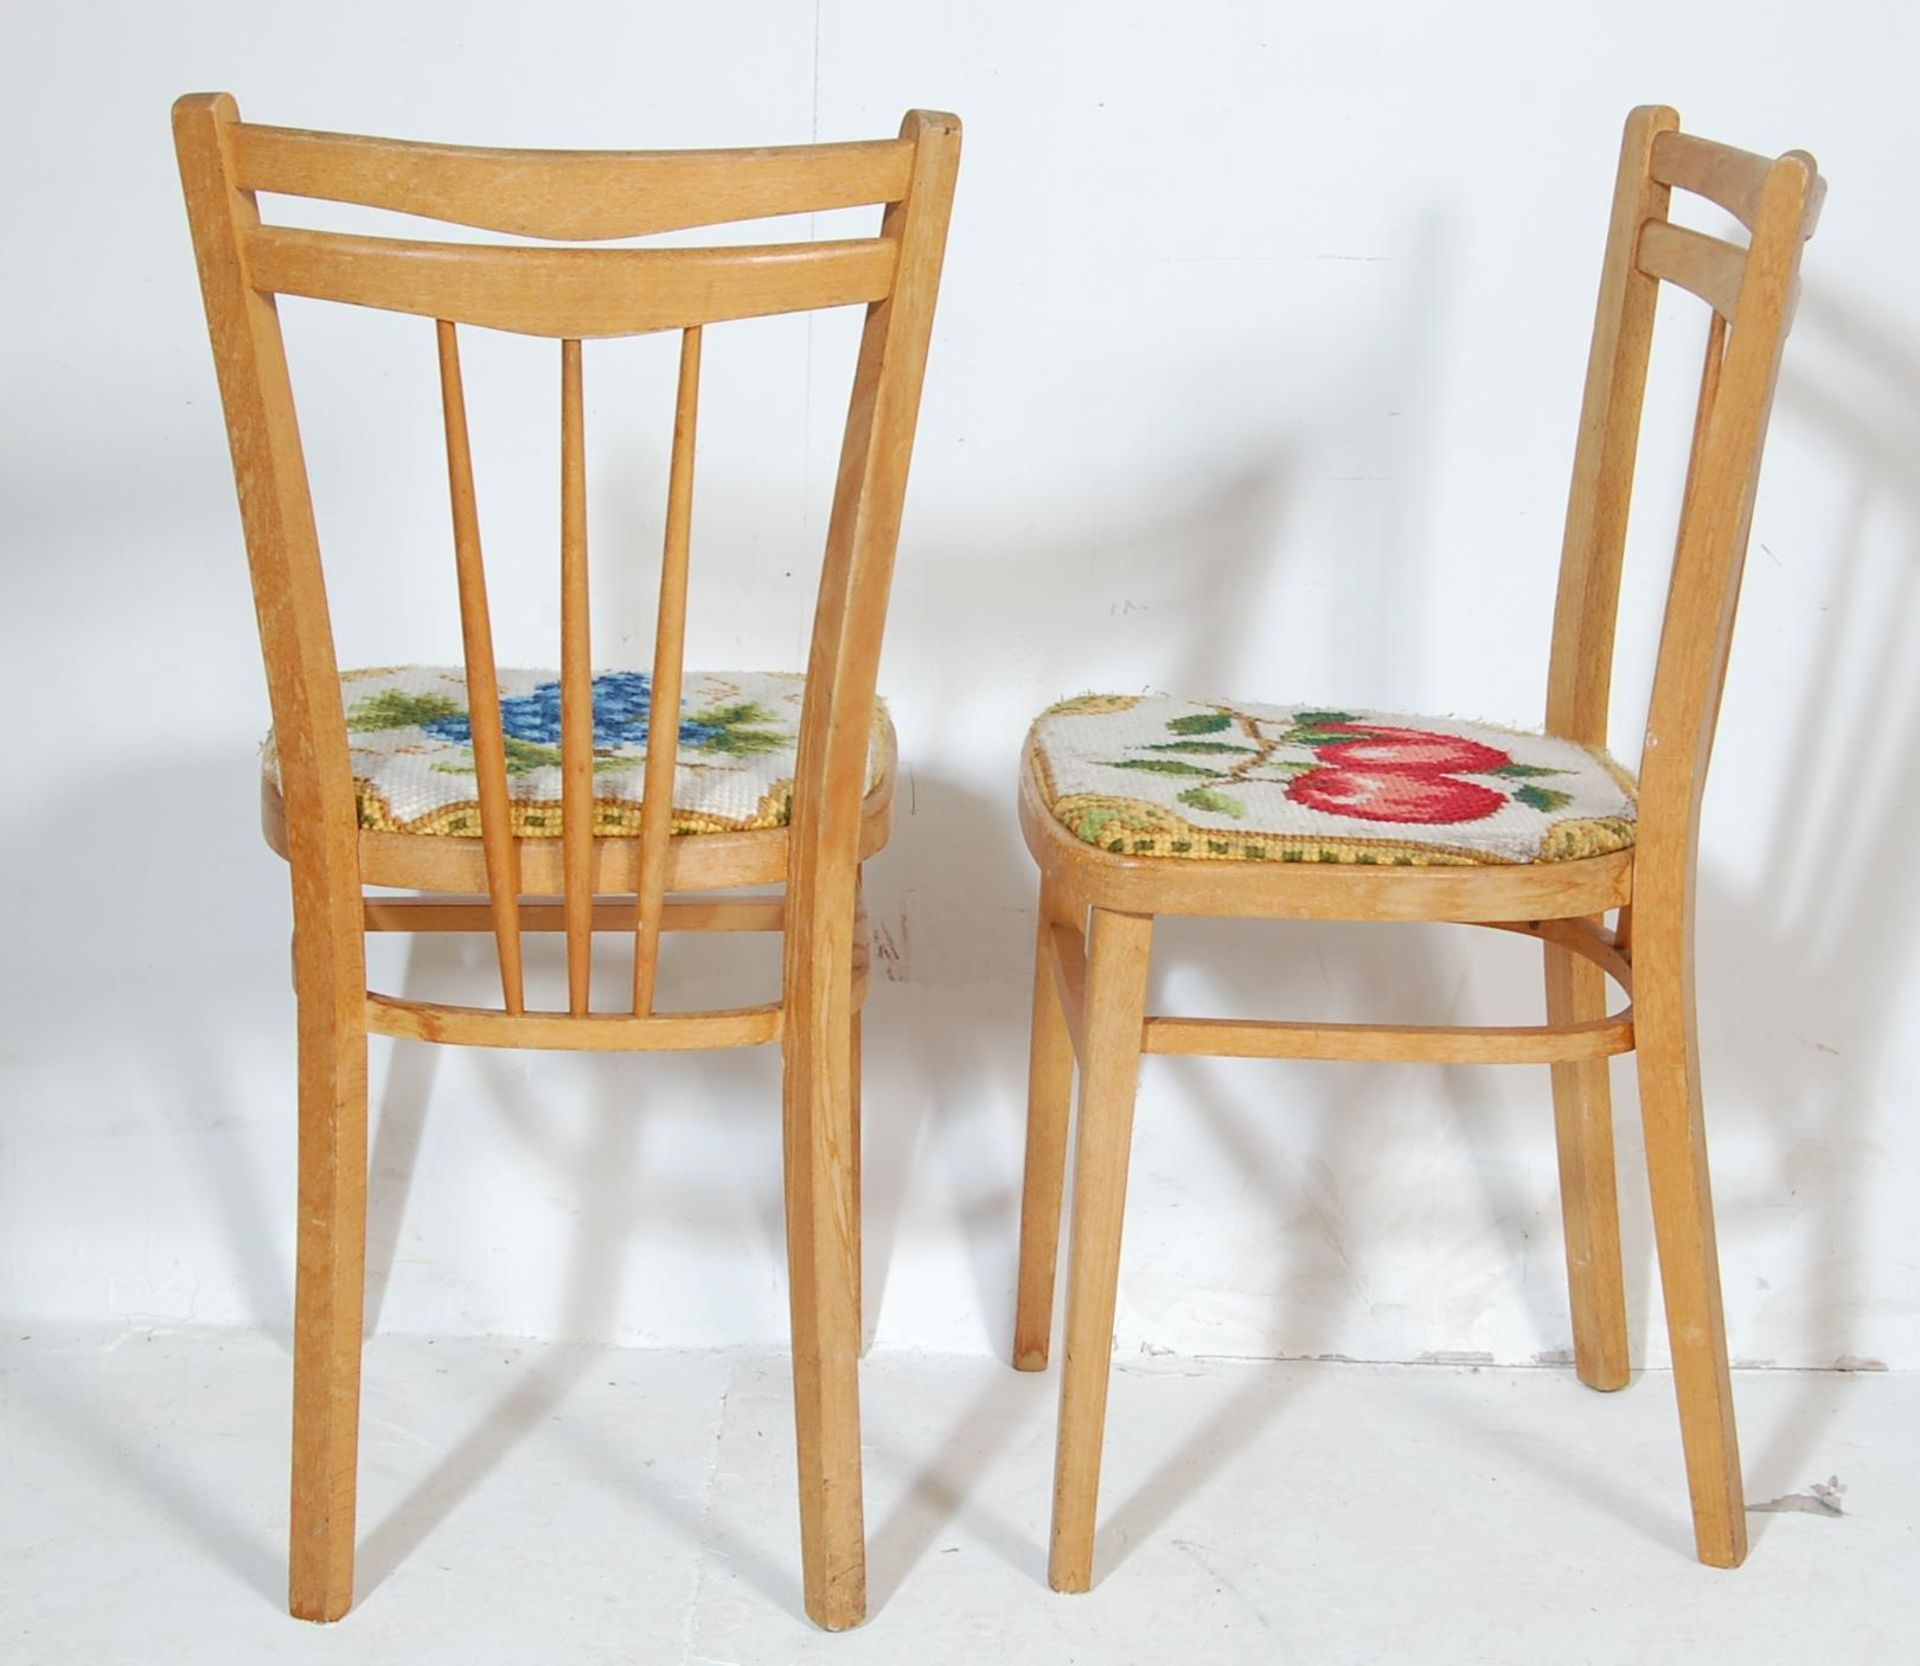 FIVE RETRO 20TH CENTURY DINING CHAIRS / KITCHEN CHAIRS - Image 5 of 5